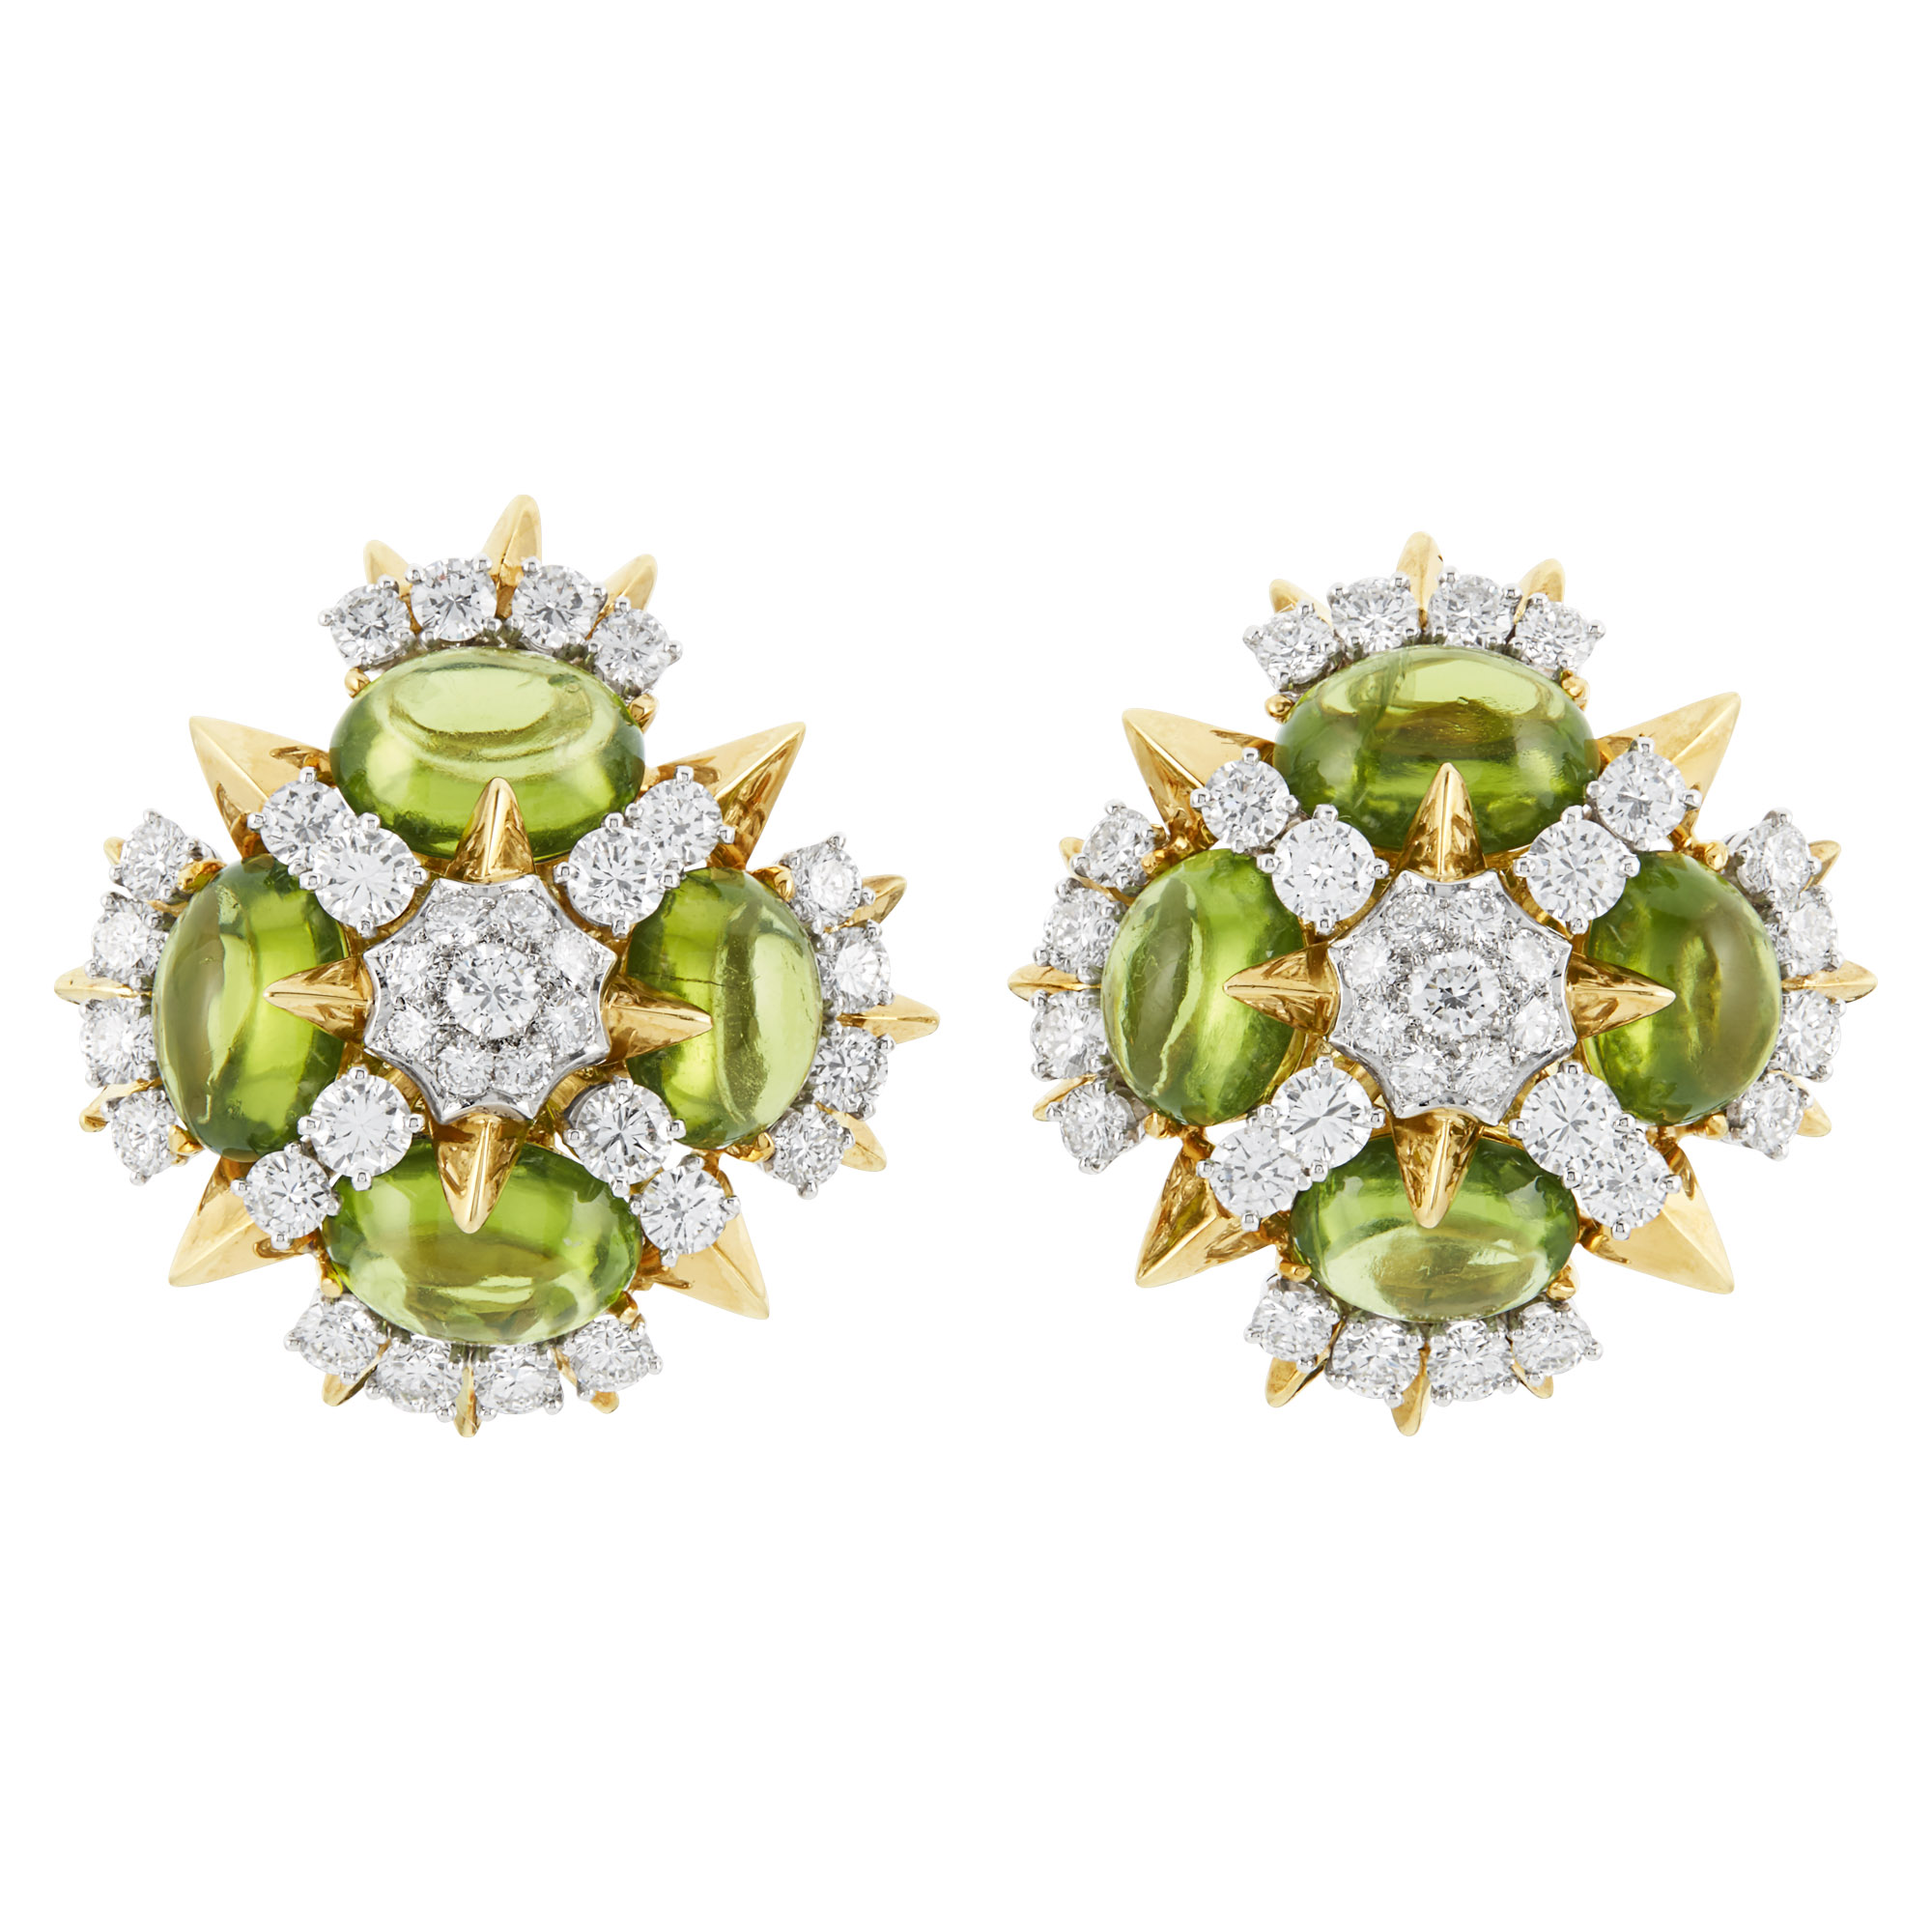 Lot image - Pair of Gold, Platinum, Peridot and Diamond Earclips, Tiffany & Co.